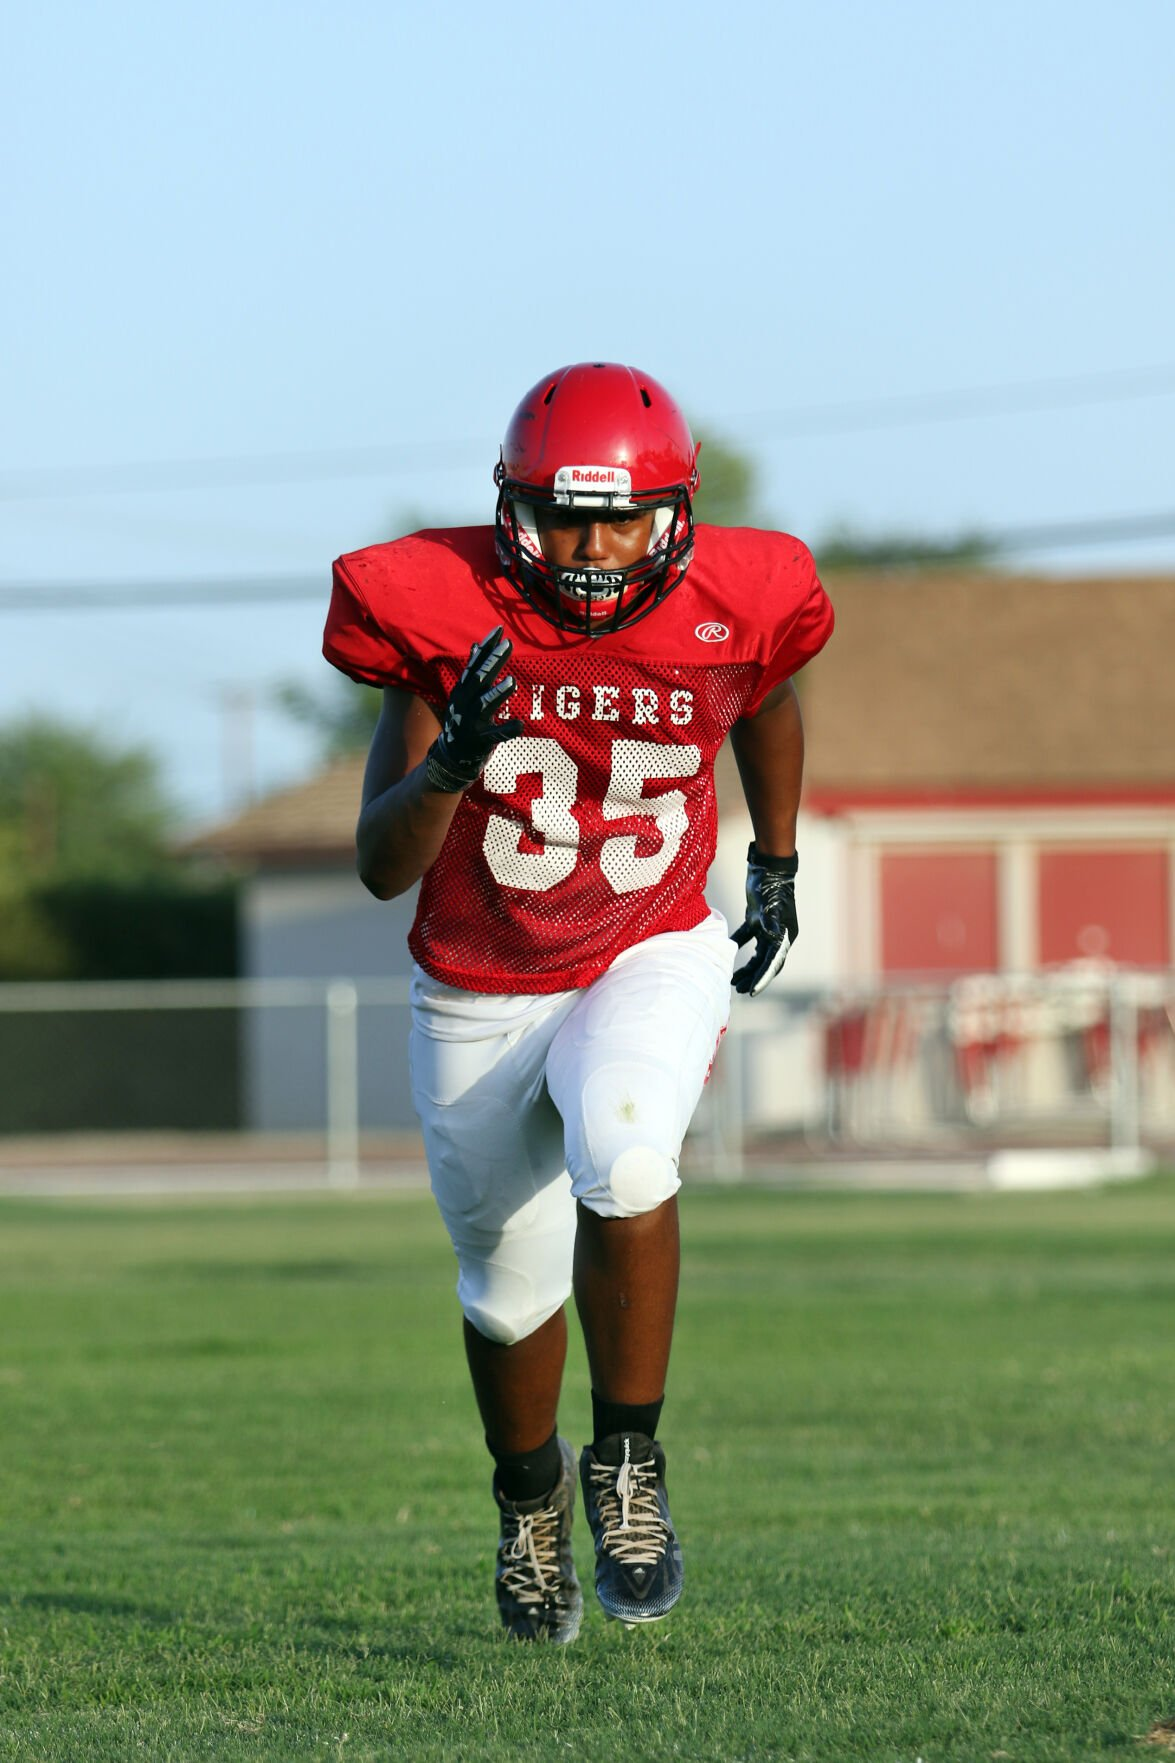 Imperial High Football--Jeremiah Naylor, 17, Outside Line Backer